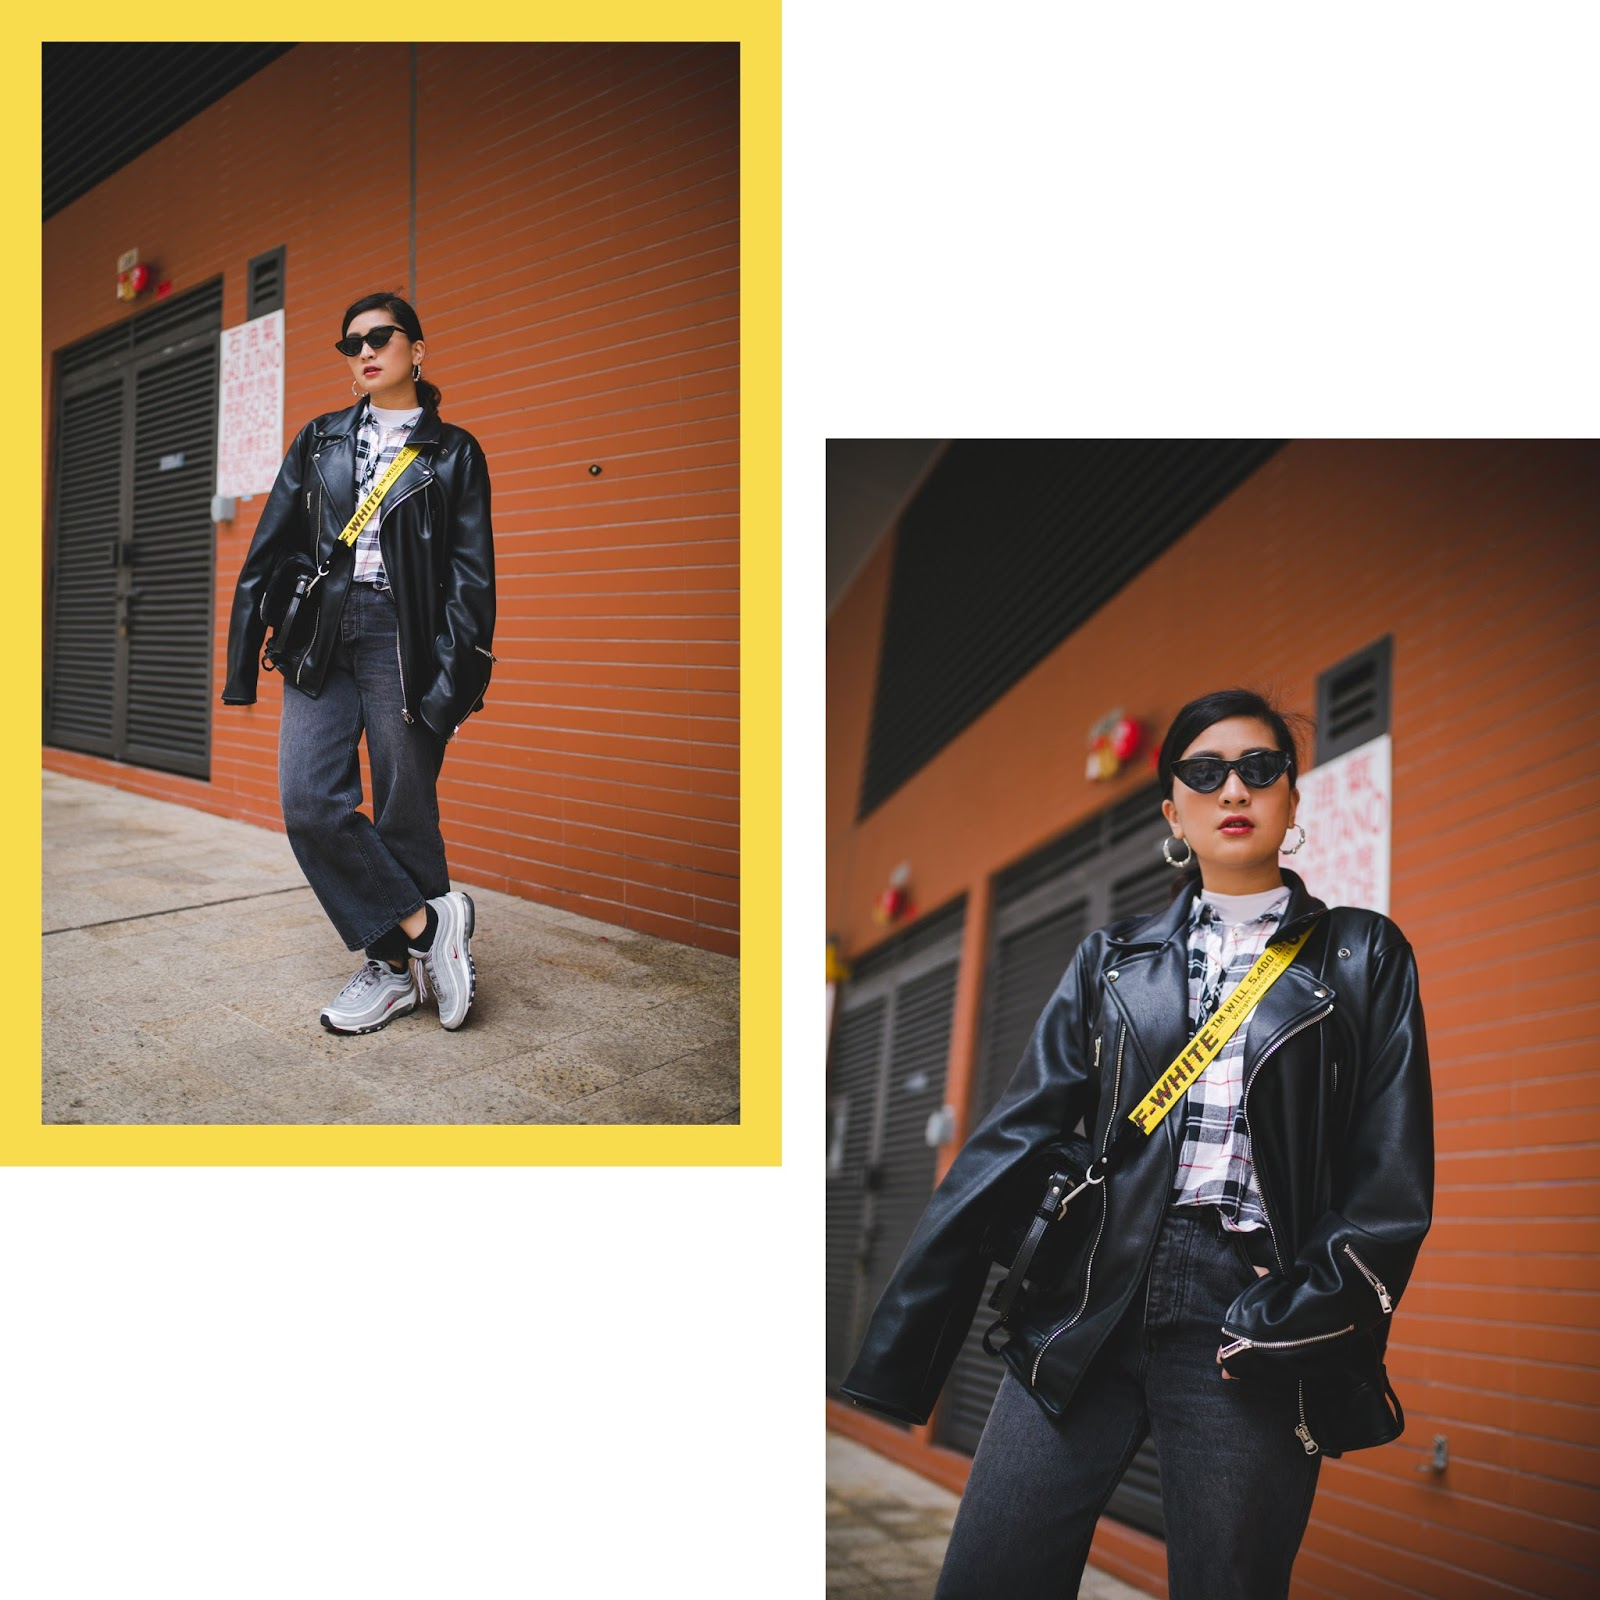 Streetstyle Biker Vibe in Leather Jacket and Air Max 97